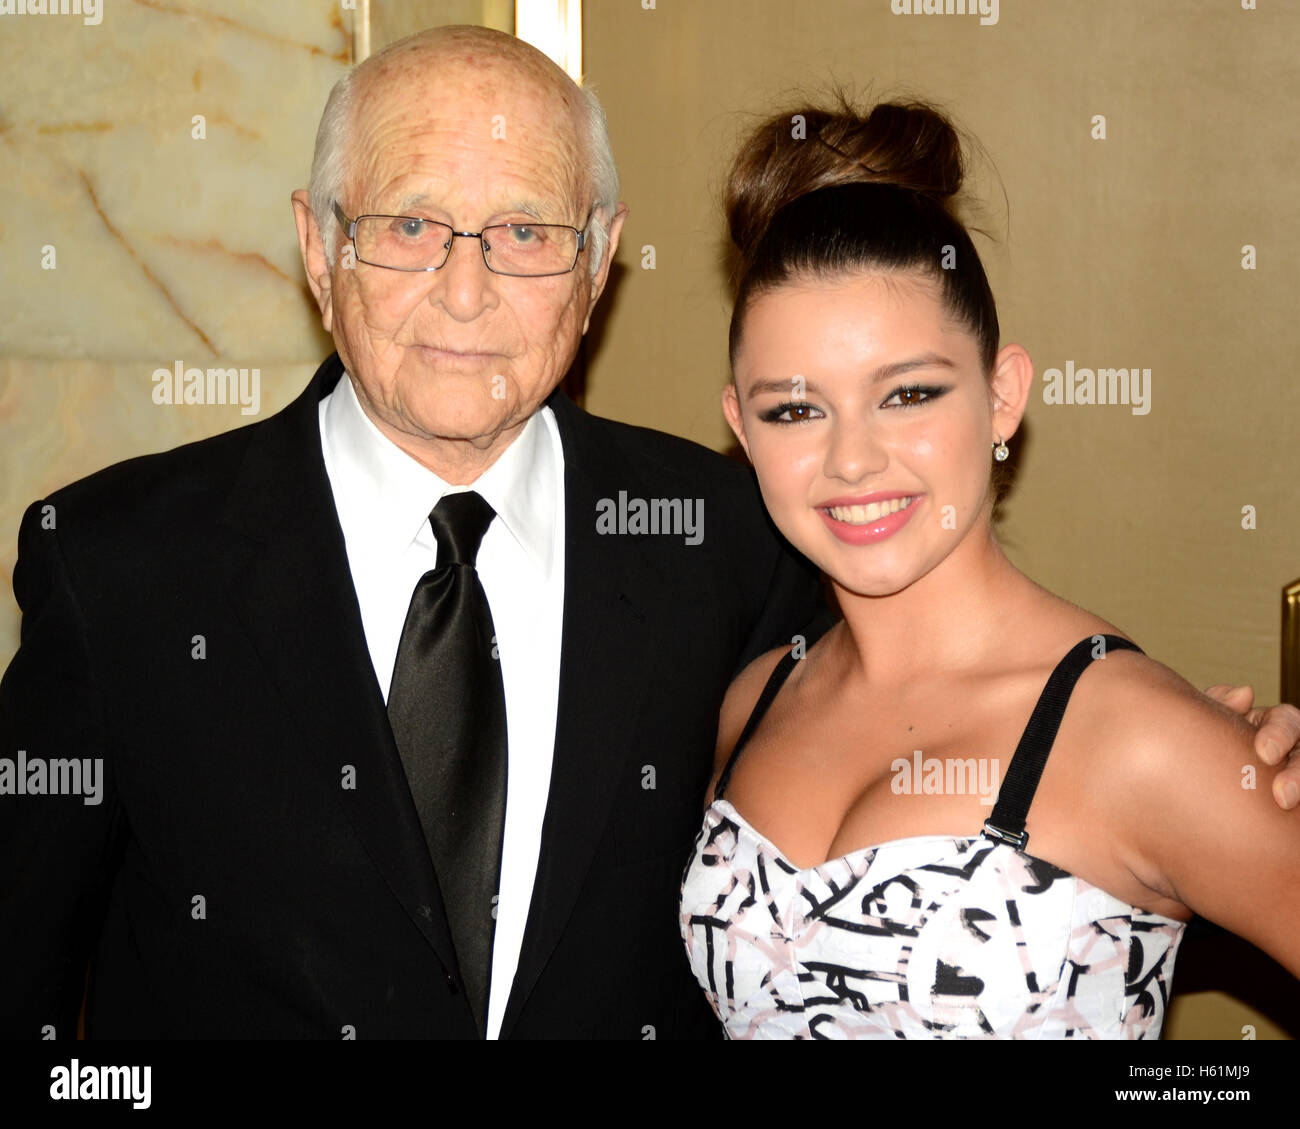 Fatima Ptacek (r) and Norman Lear arrive at the 30th Annual Imagen Awards on August 21, 2015 in Los Angeles, California. - Stock Image